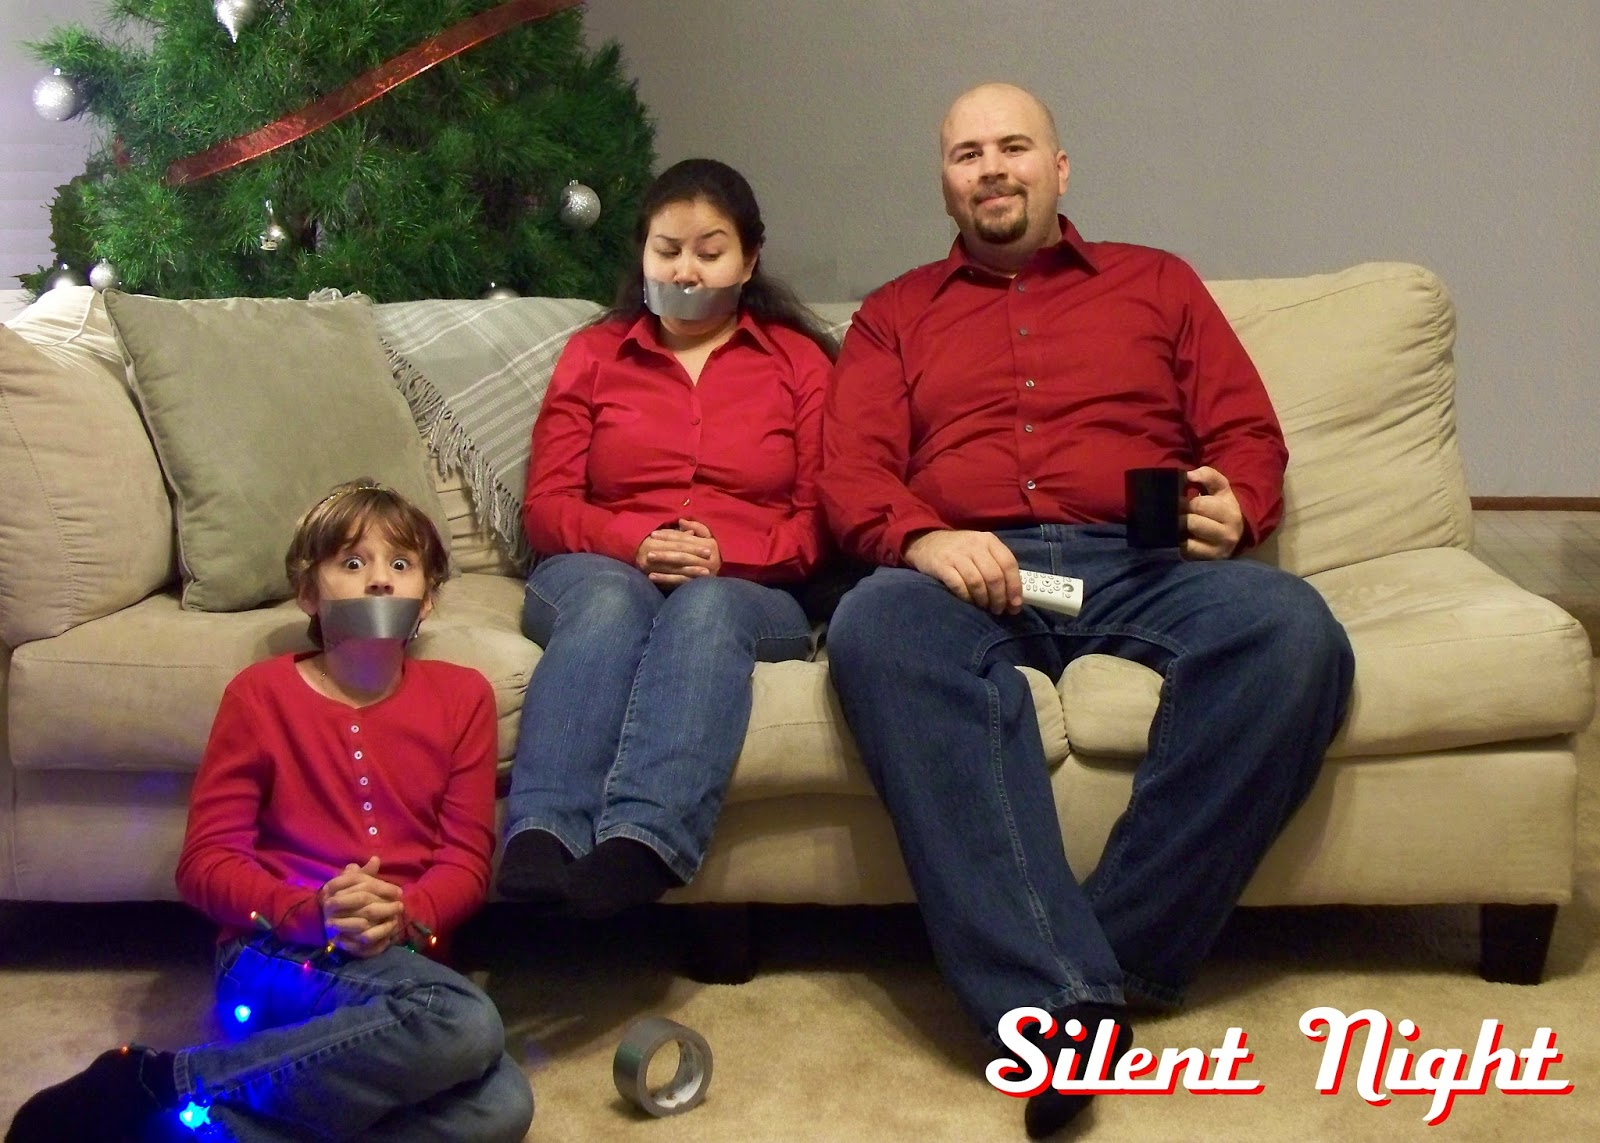 Shanafelt Christmas Cards: 2011 - Silent Night